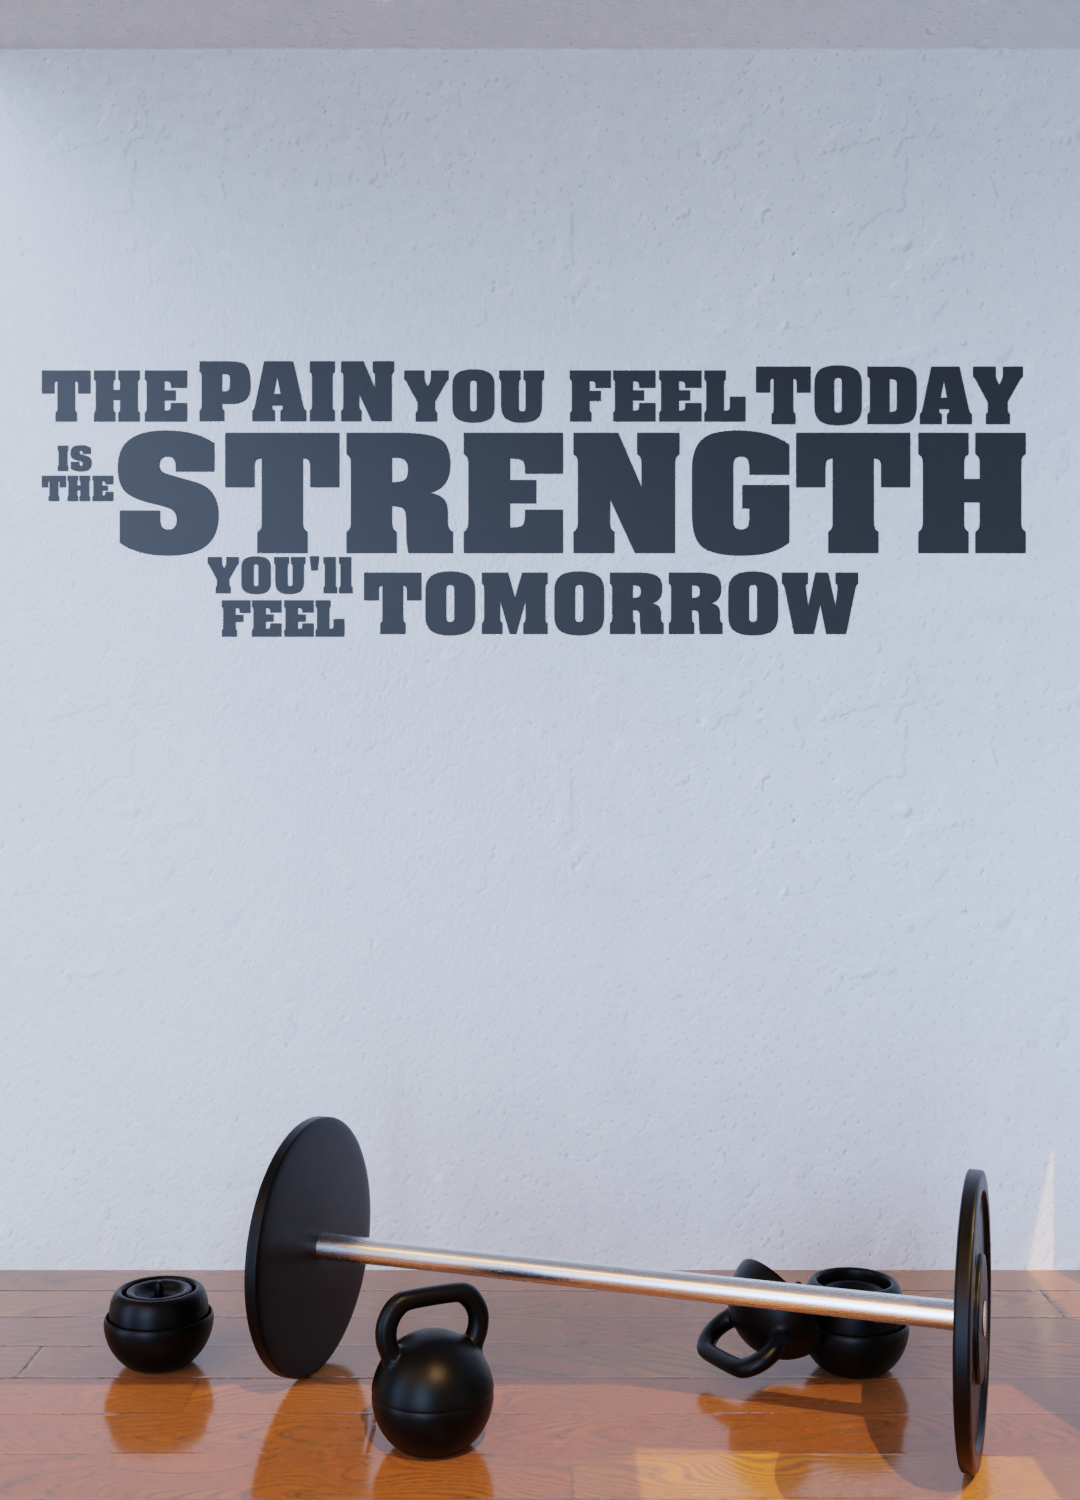 The Pain You Feel Today is the Strength You'll Feel Tomorrow